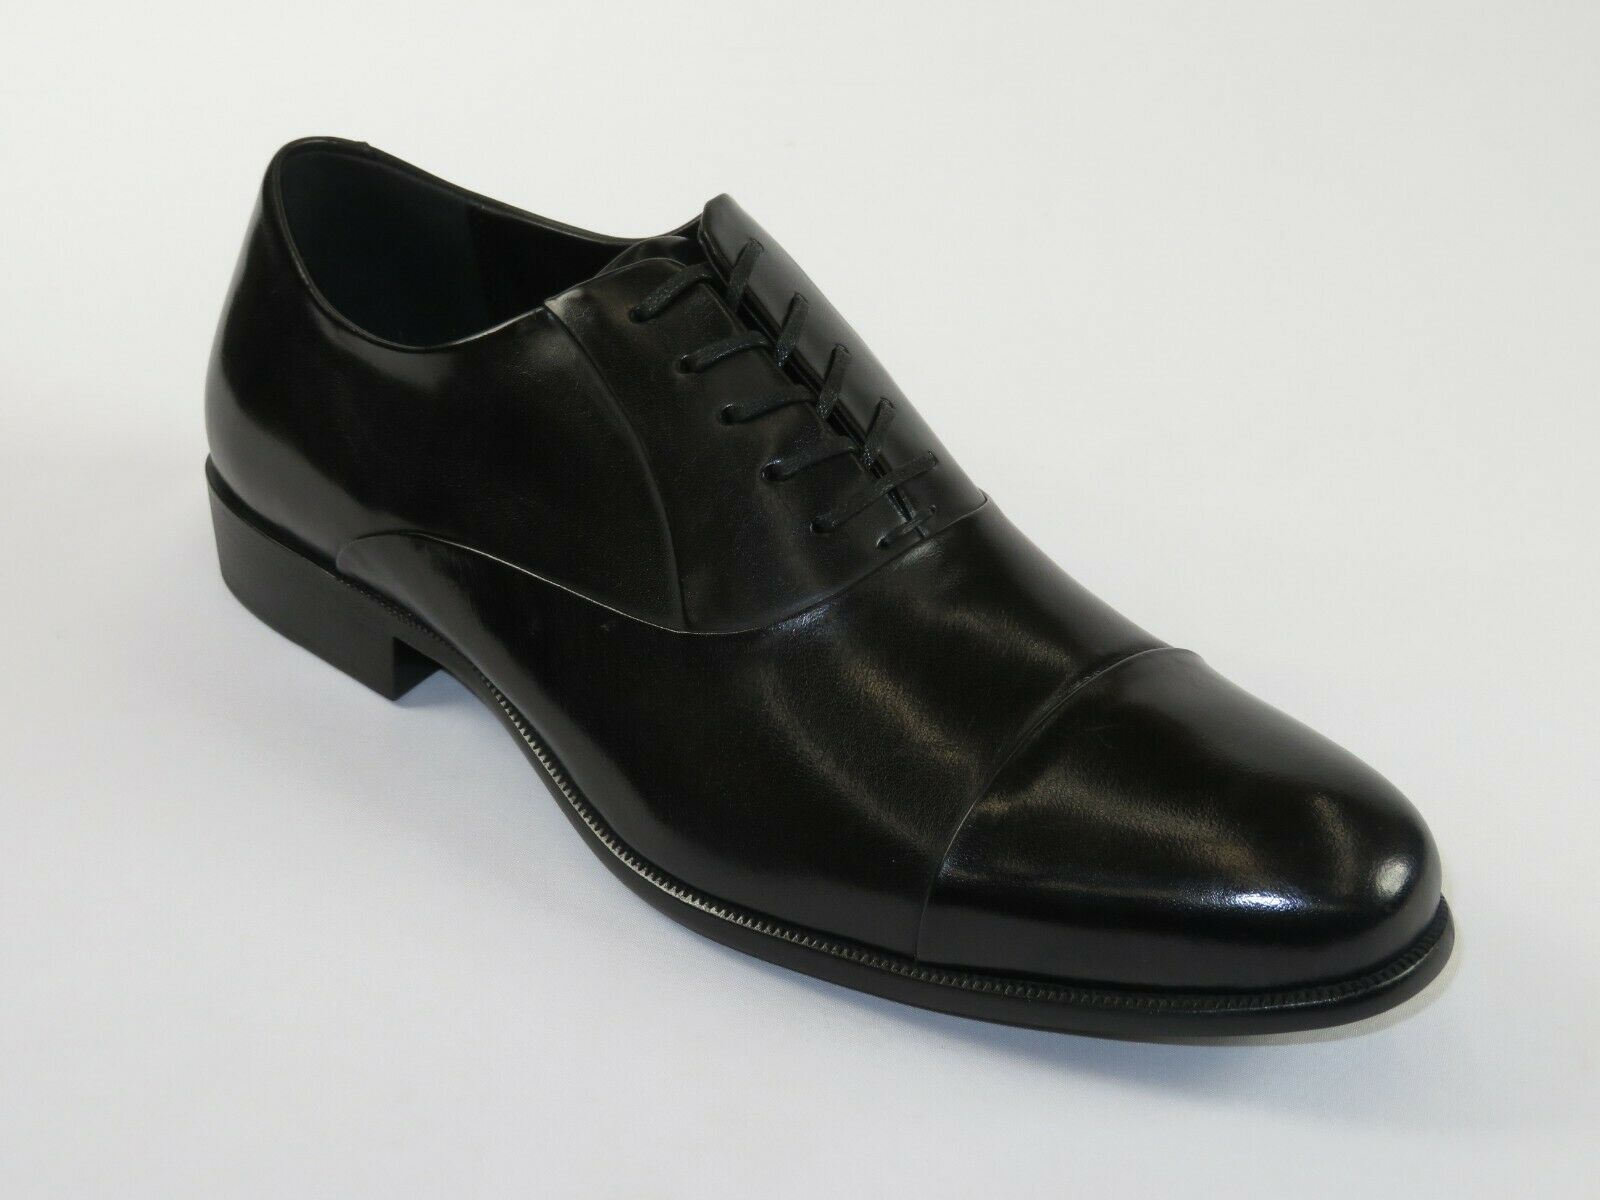 Image result for Kenneth Cole shoes